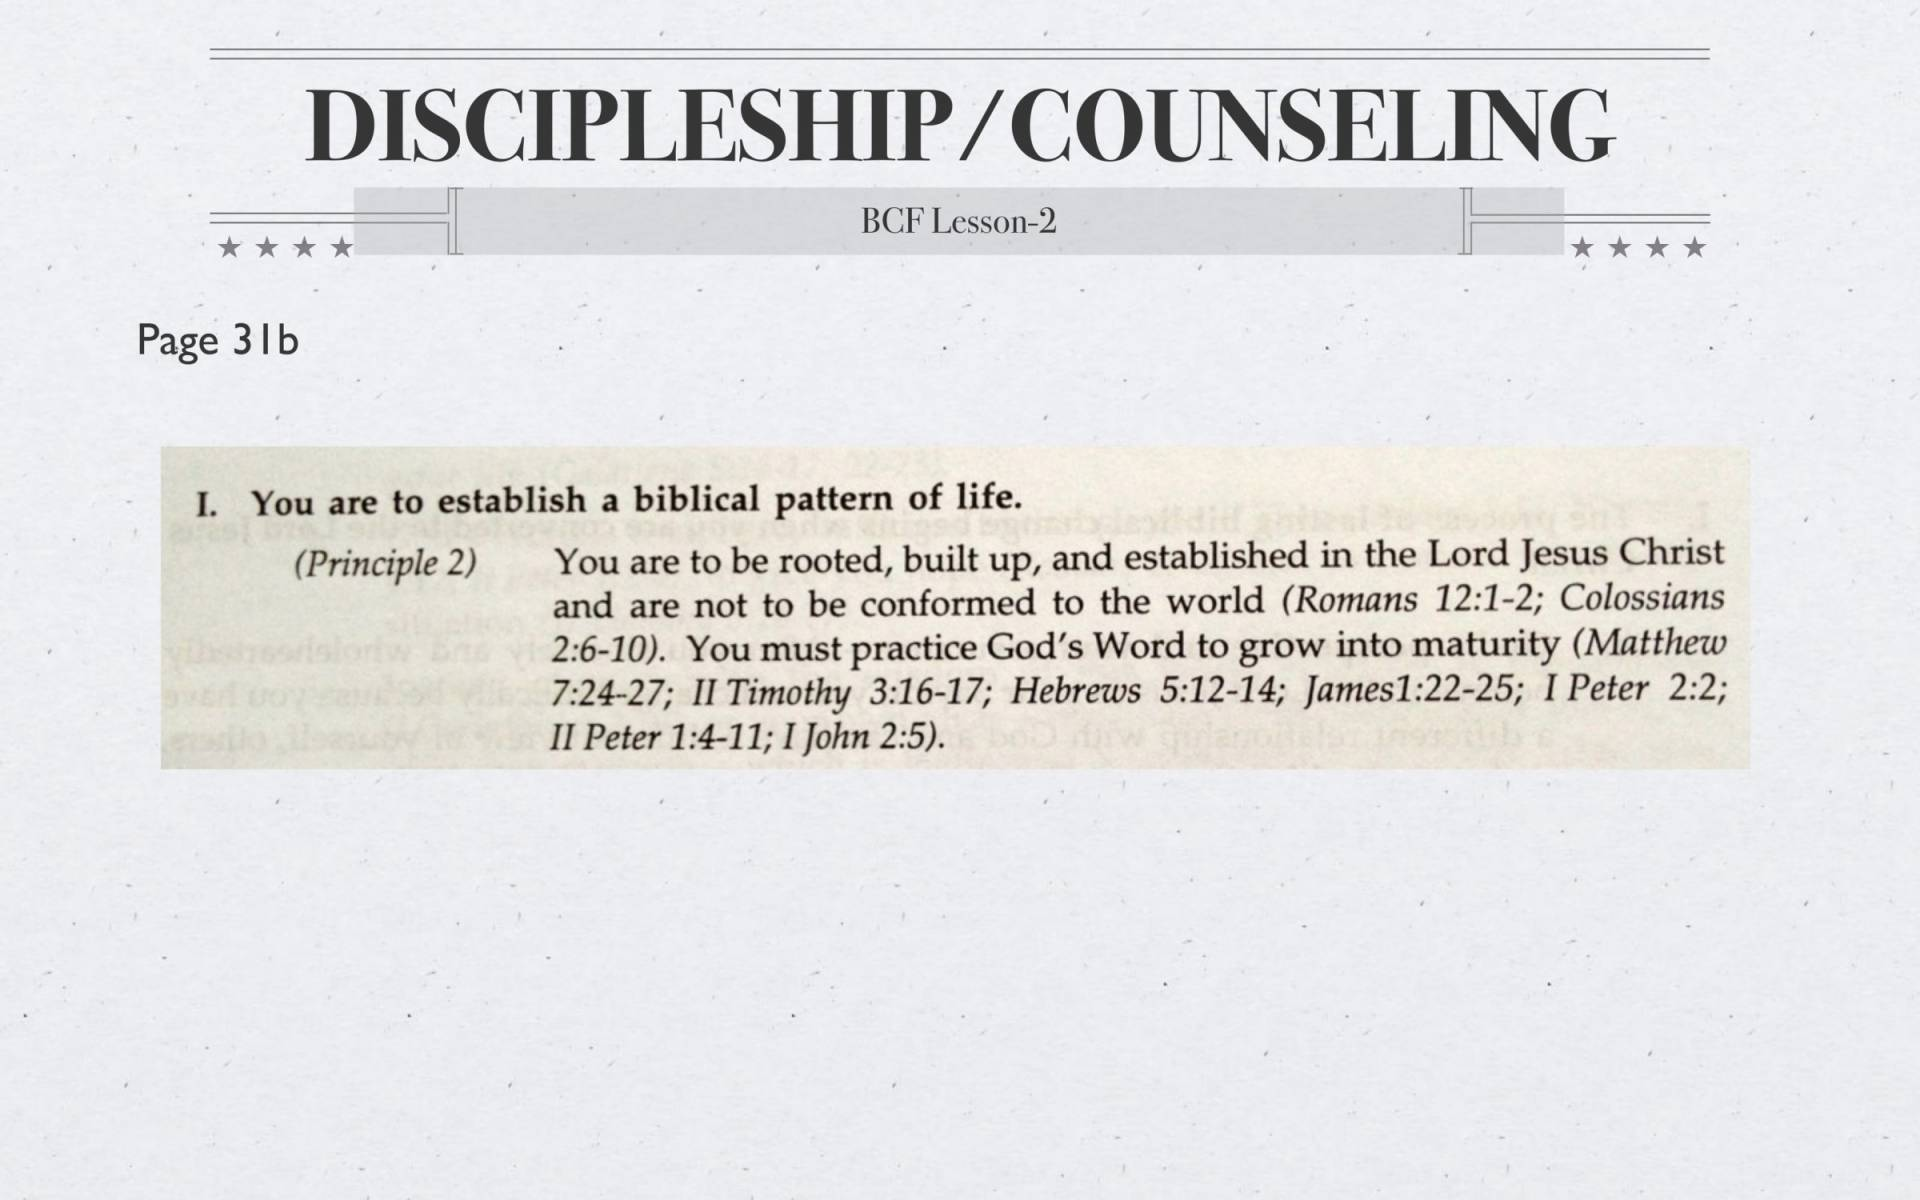 BC&D-04 - How To Focus Your Bible Study Time For Discipleship & Counseling-10